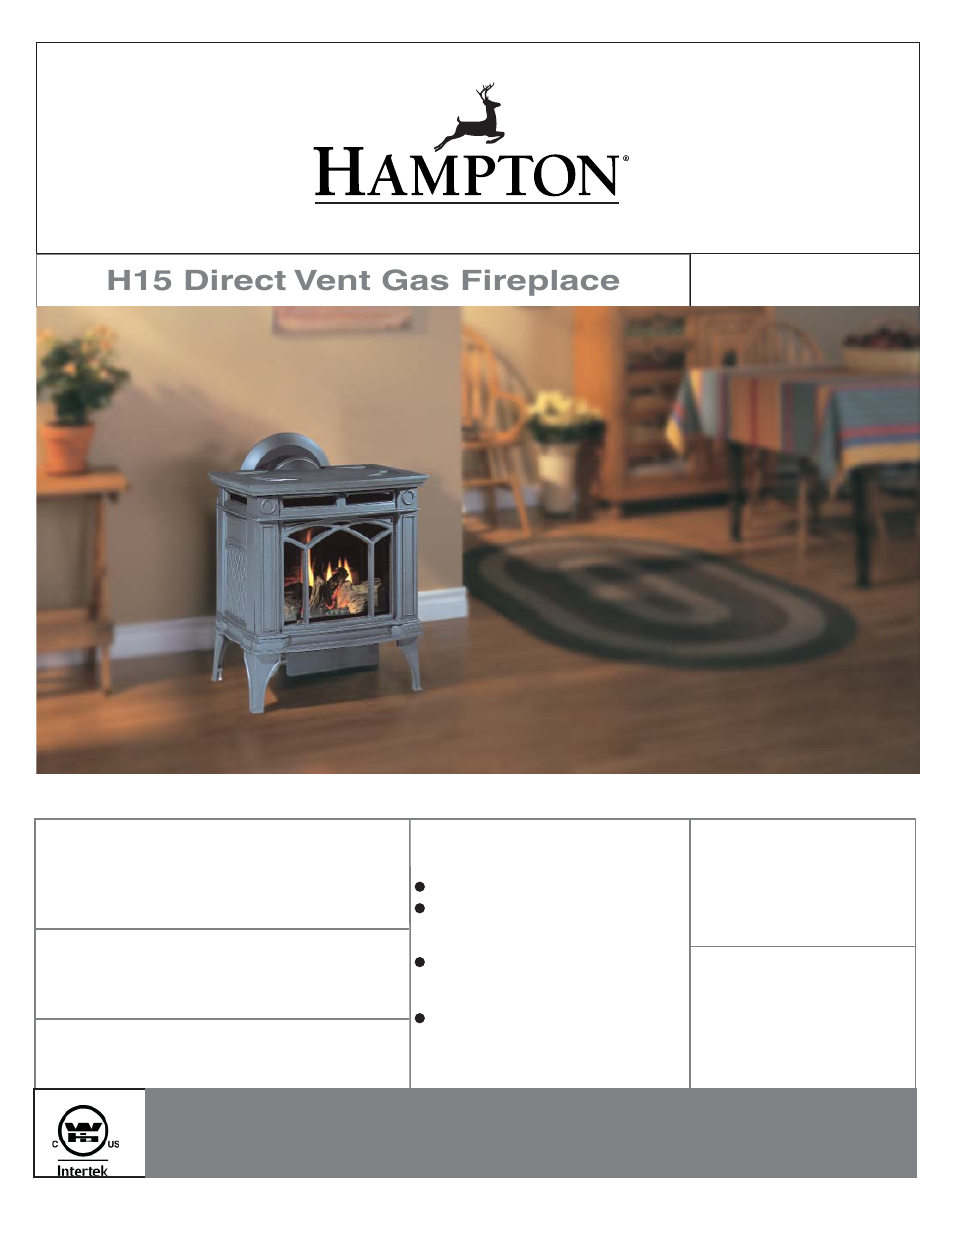 regency hampton h15 small gas stove user manual 48 pages